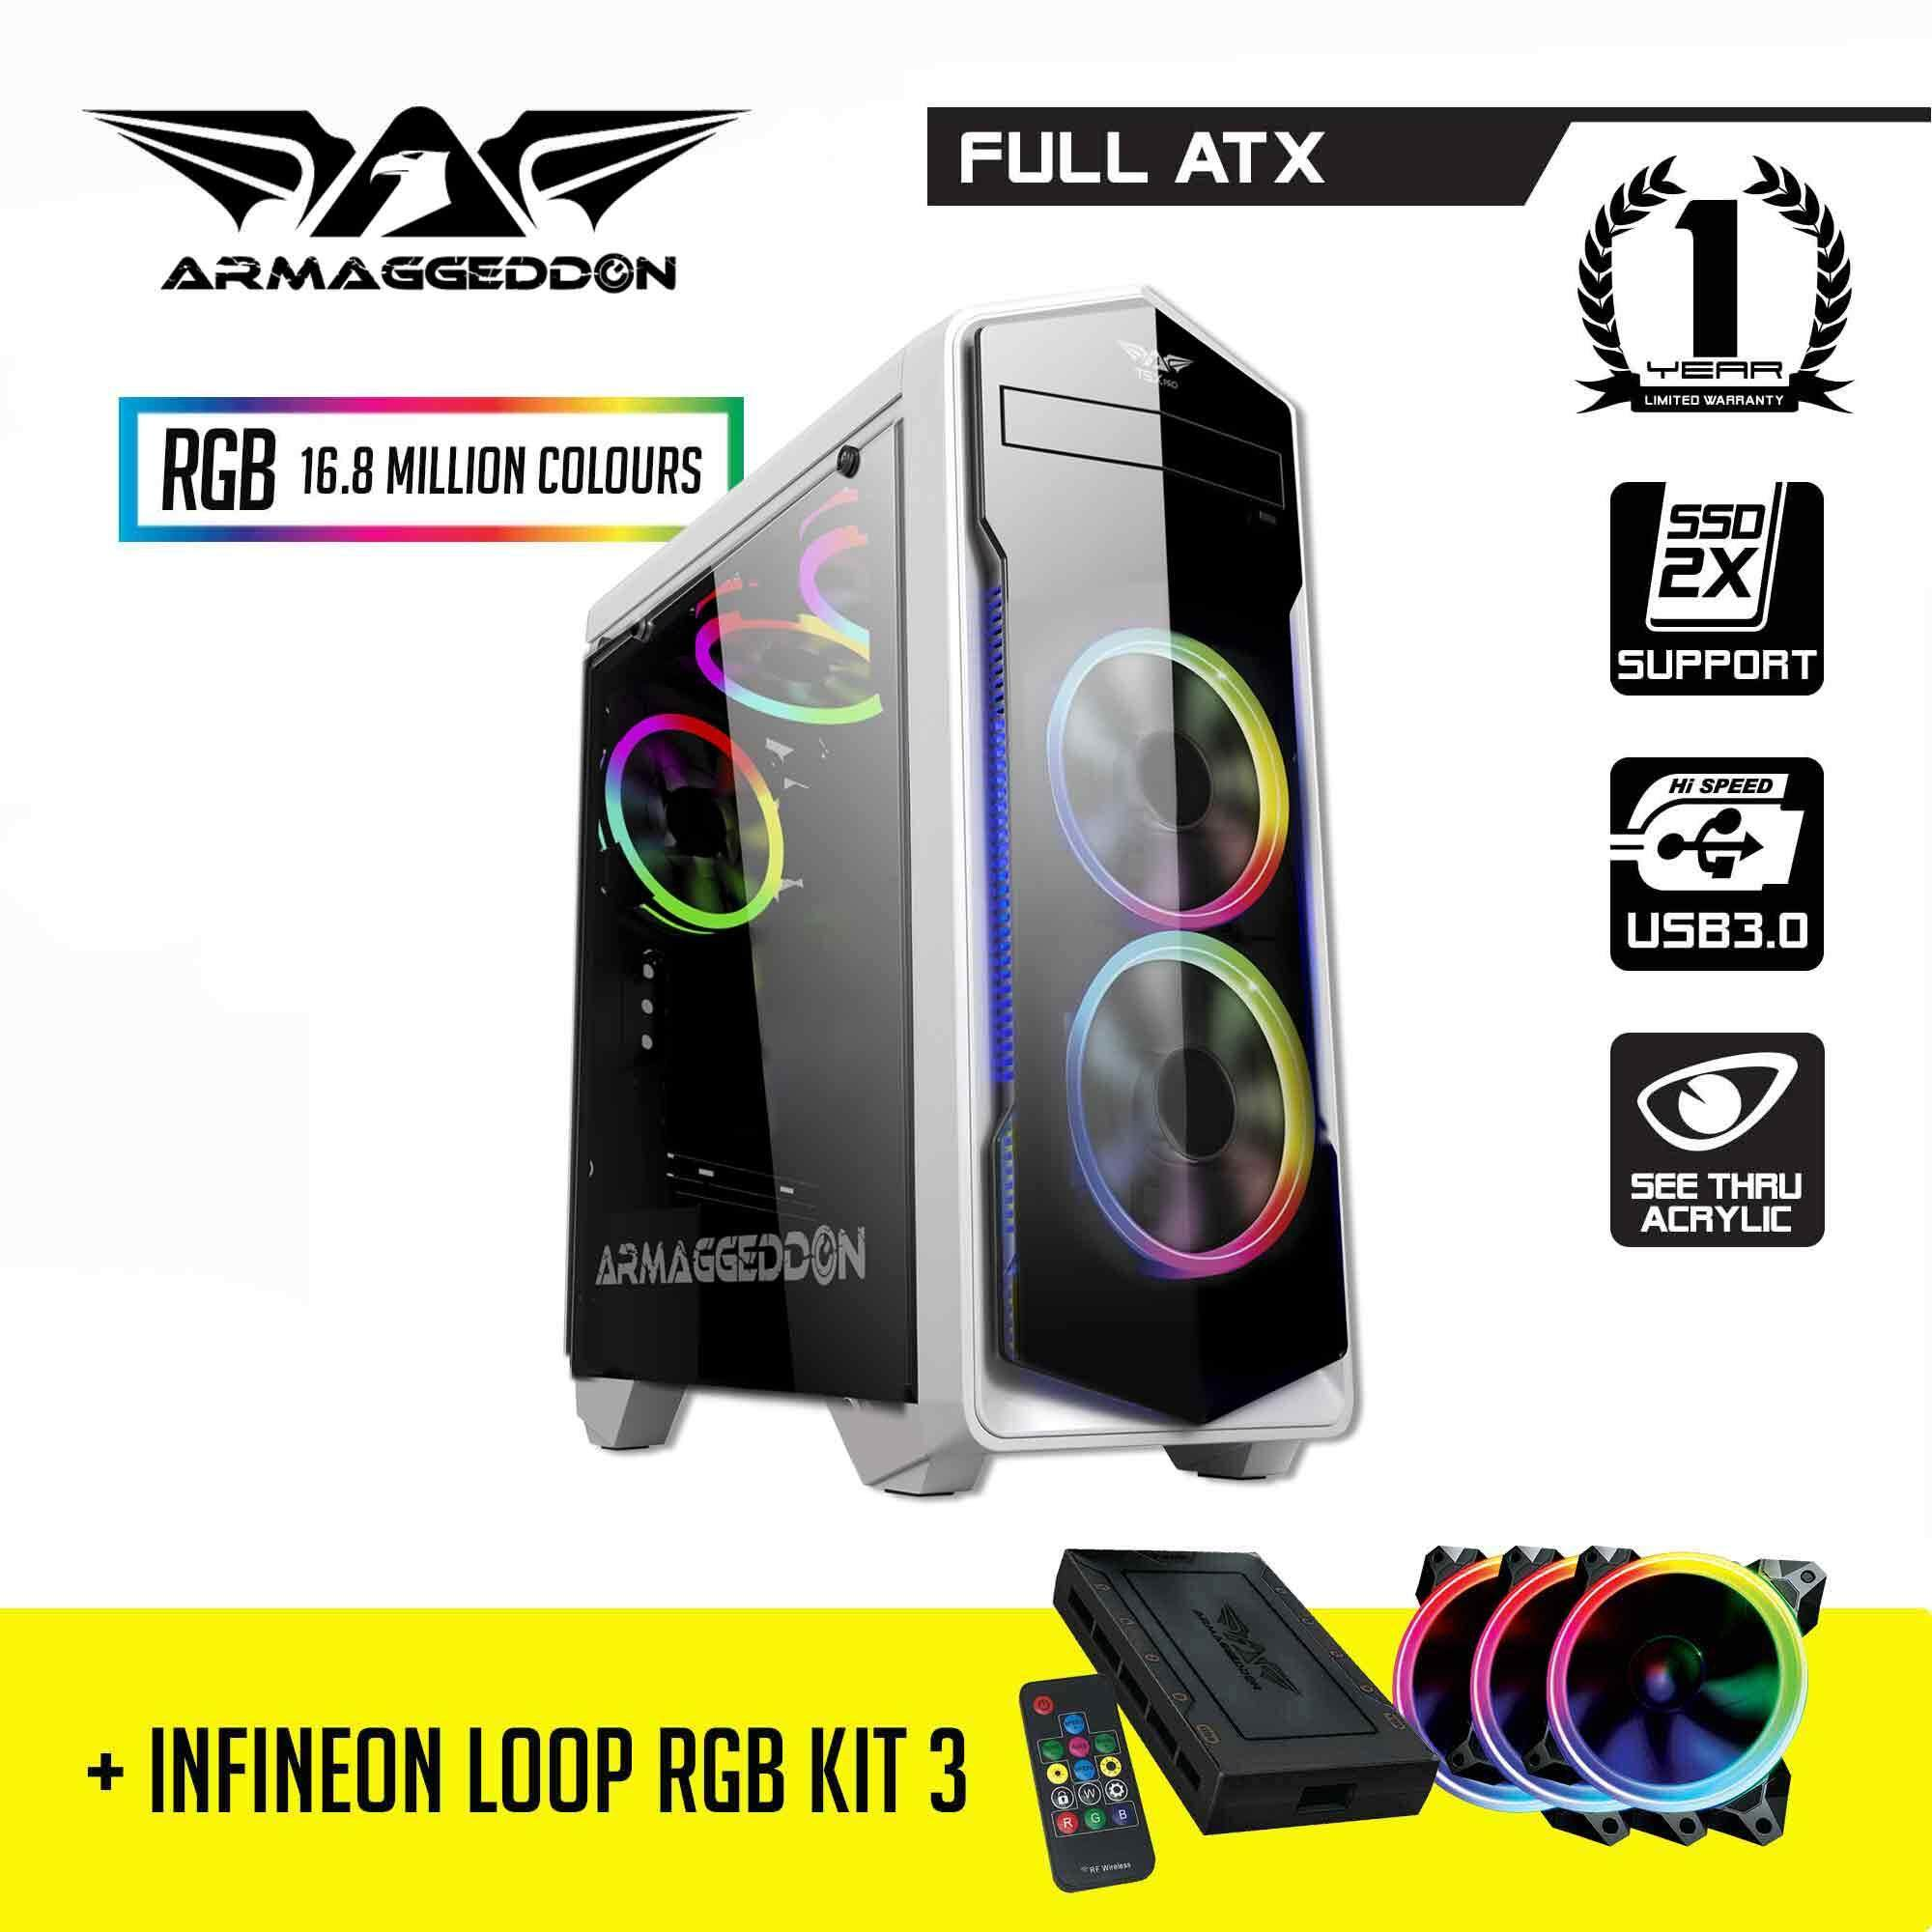 BUNDLE: Armaggeddon T5X Pro Full ATX Gaming Case and Infineon Loop RGB Kit 3 RGB Malaysia